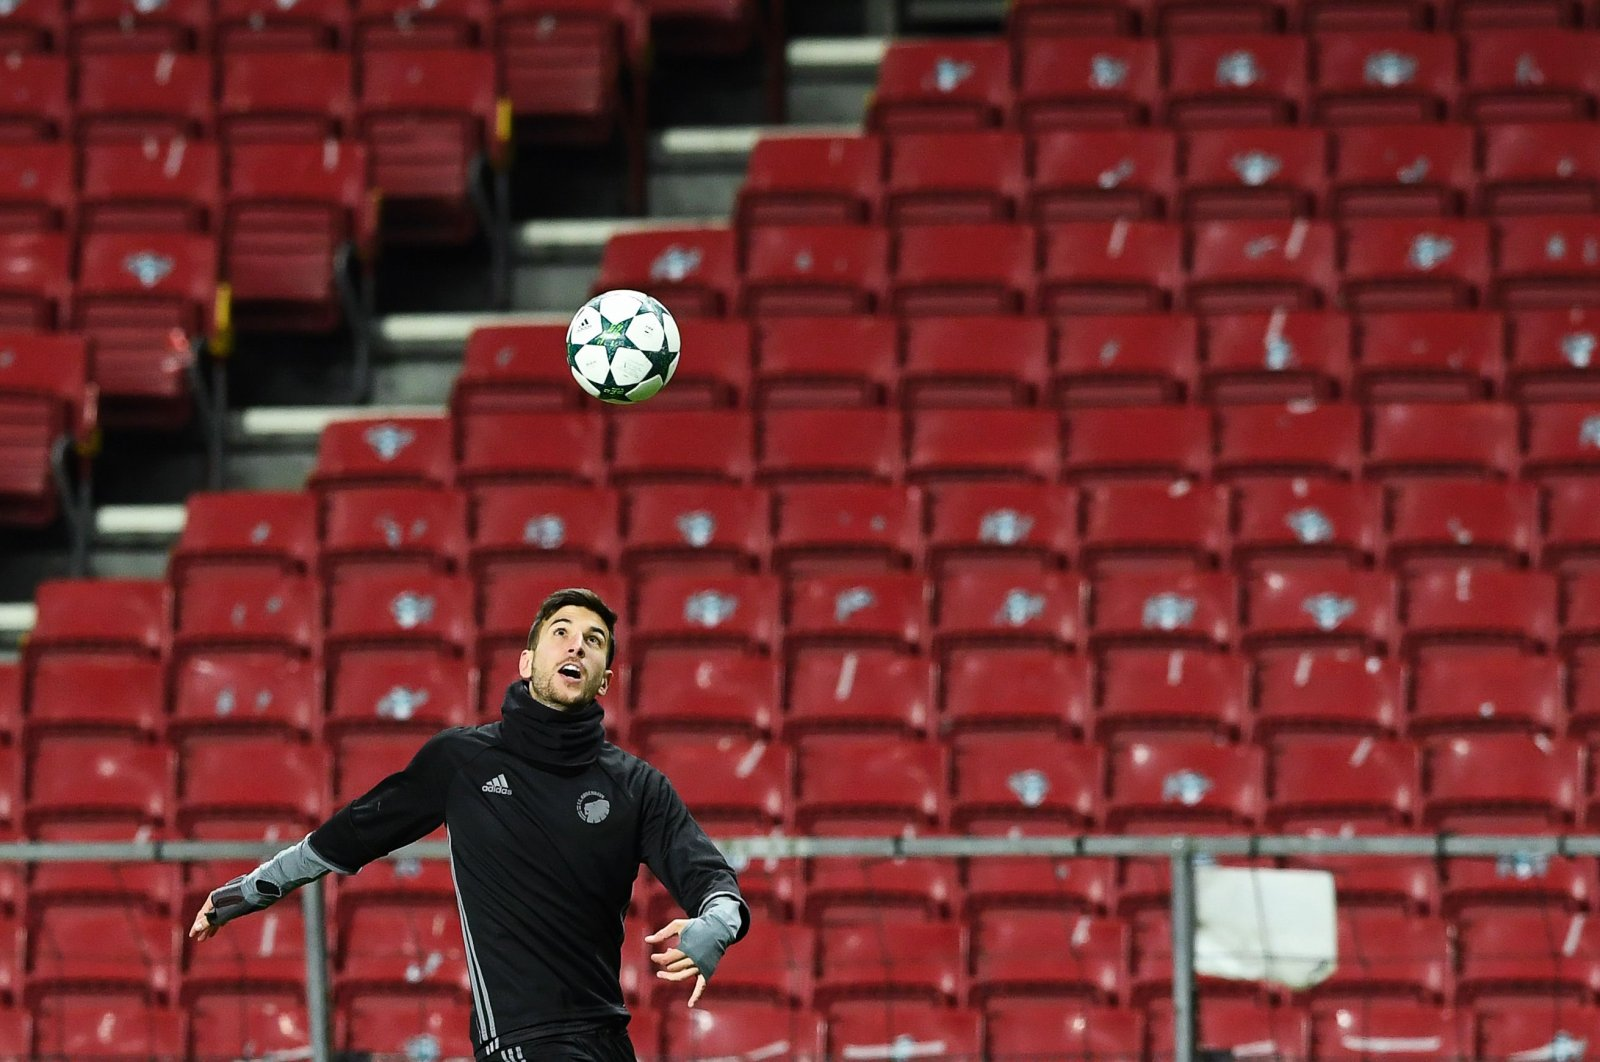 FC Copenhagen's Serbian forward Andrija Pavlovic takes part in a training session at the Parken stadium in Copenhagen, on November 1, 2016, on the eve of their UEFA Champions League group G football match against Leicester City. (AFP Photo)